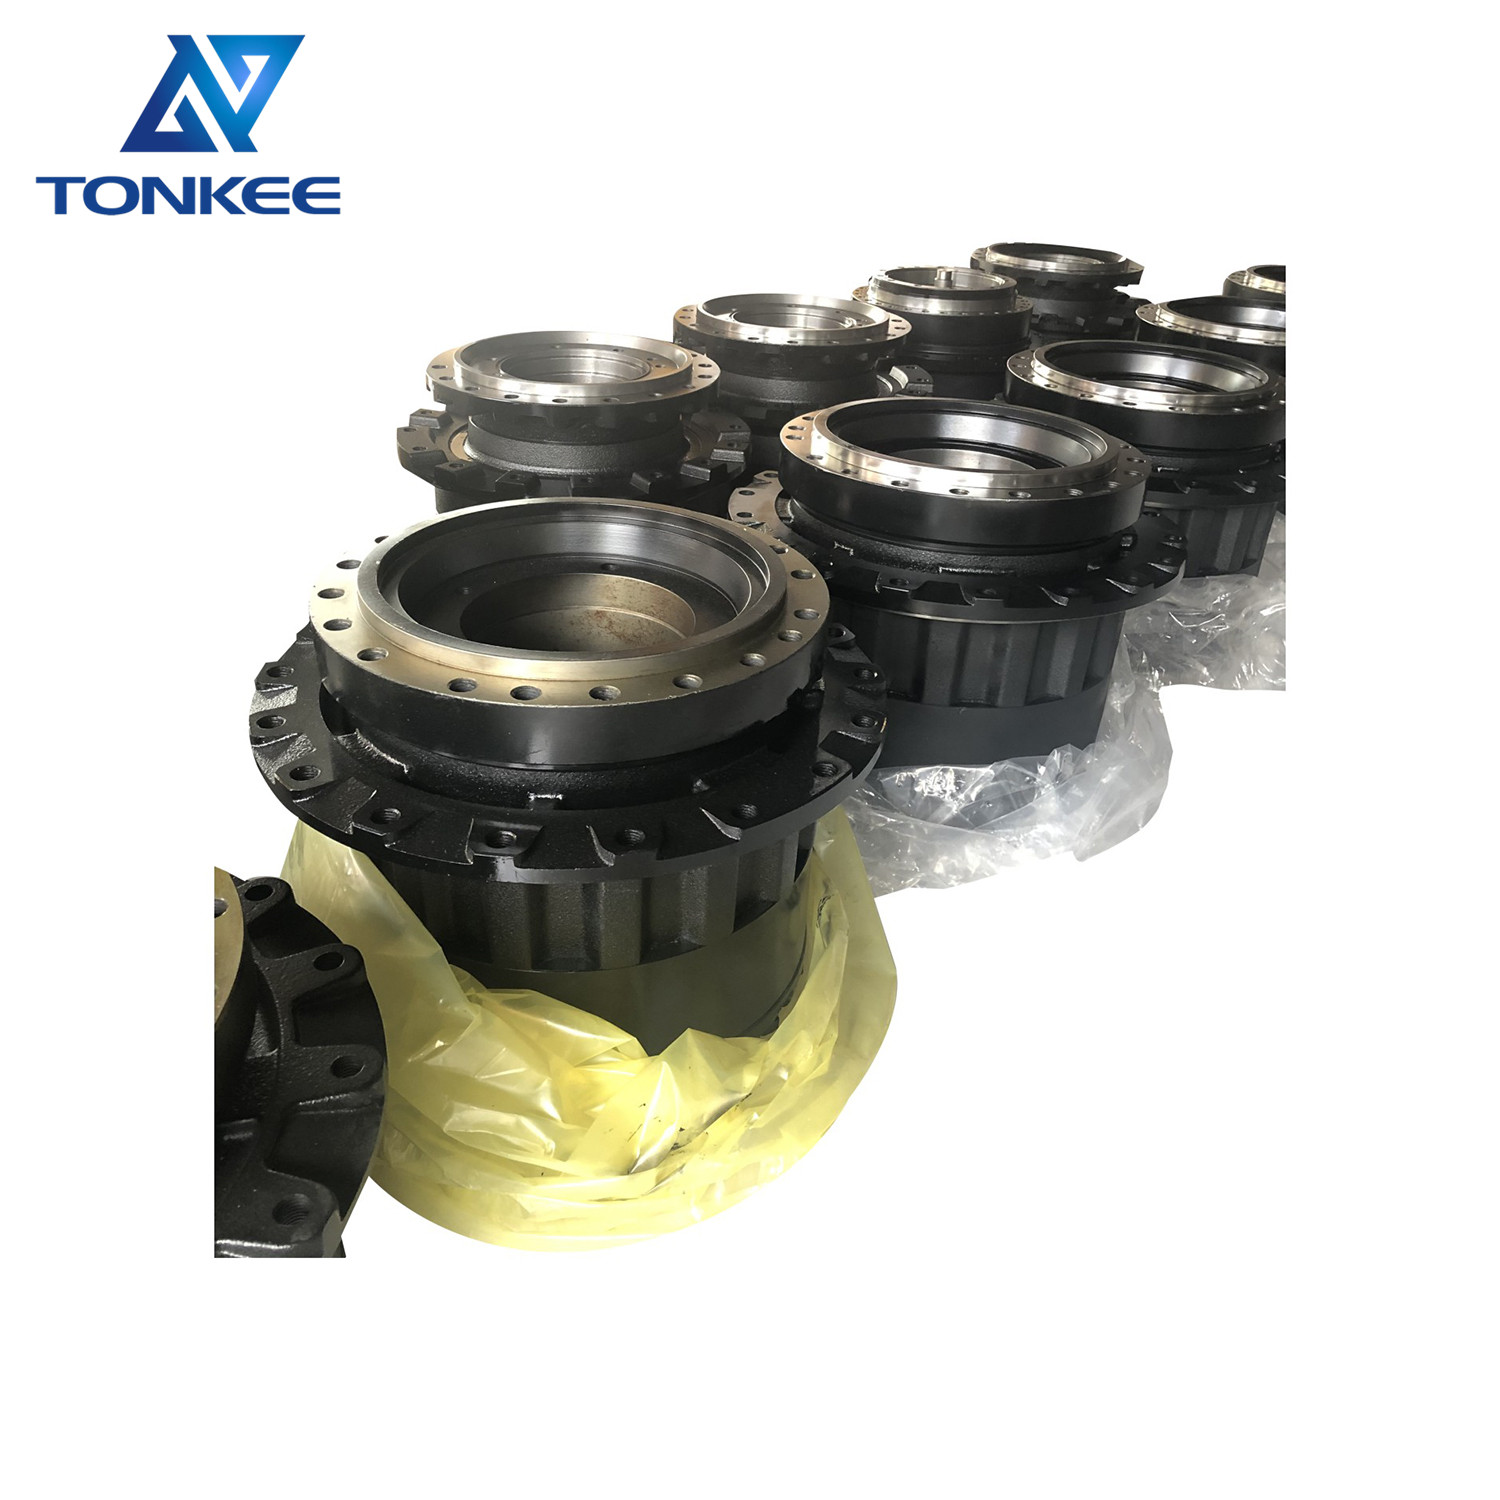 2276103 1994521 267-6796 333-2909 final drive group without motor 325C 325D excavator travel gearbox assembly